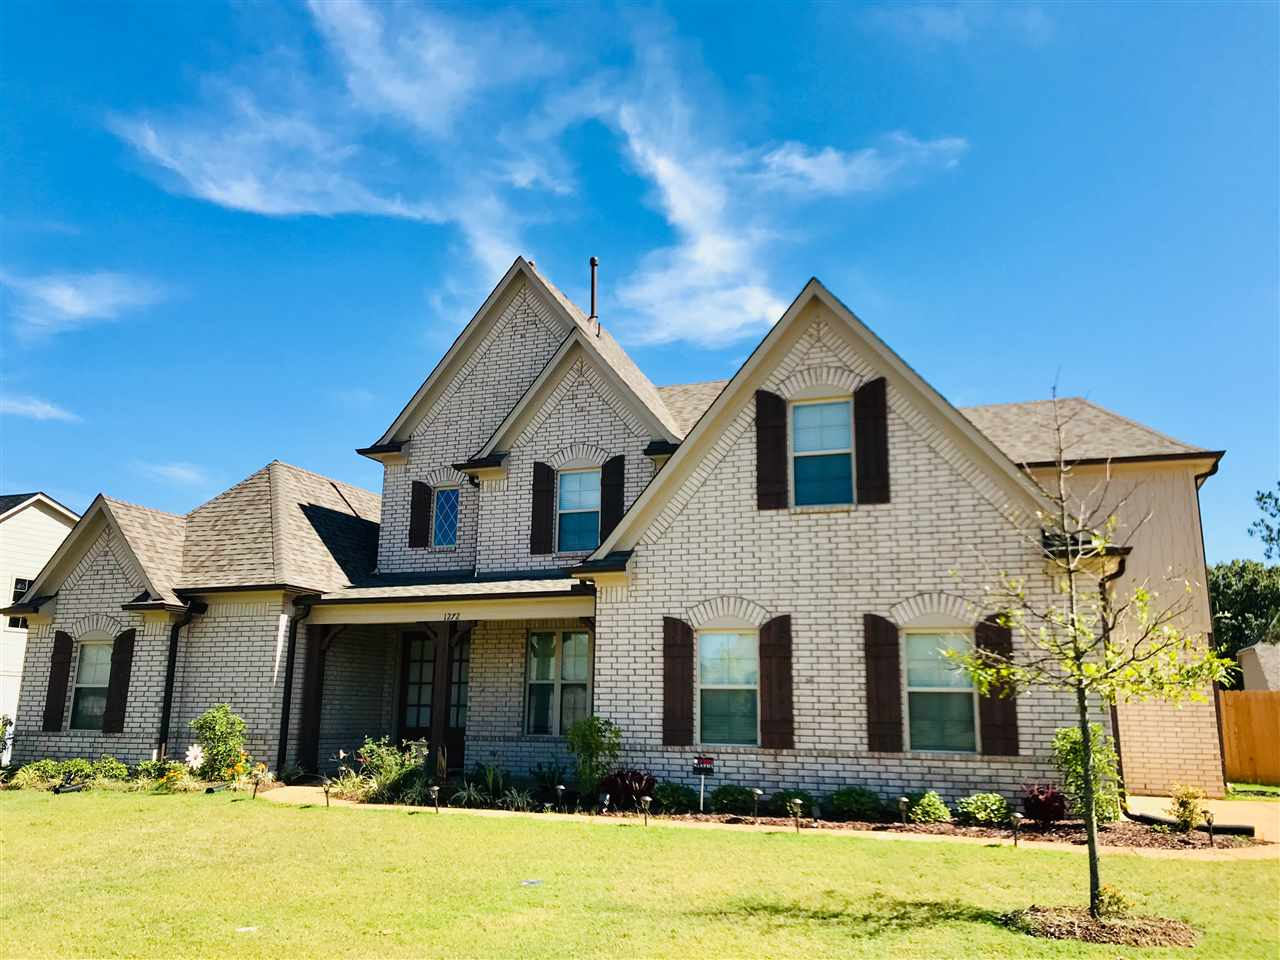 1272 MOUNTAIN SIDE DR, Collierville, TN 38017